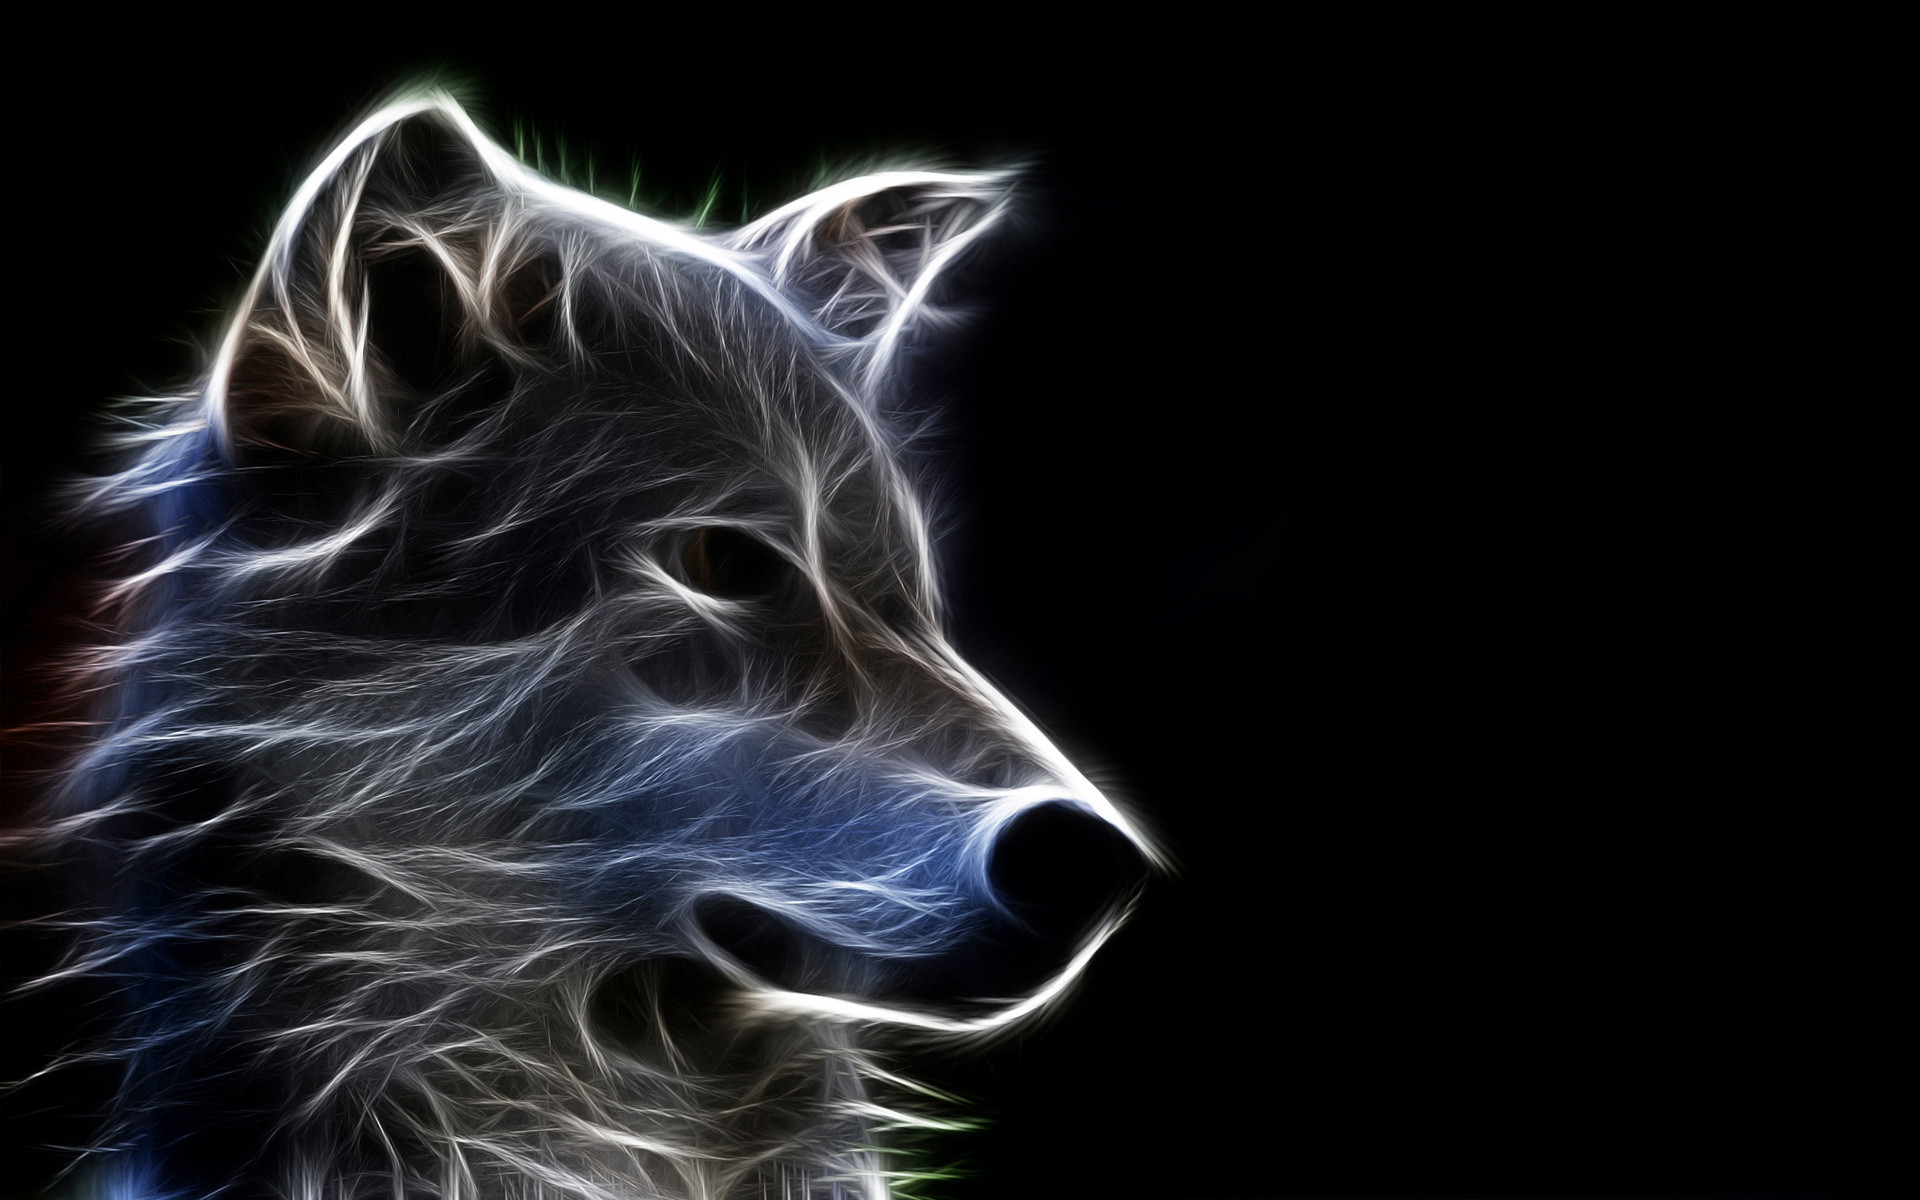 Neon Wolf Wallpaper (54+ images)